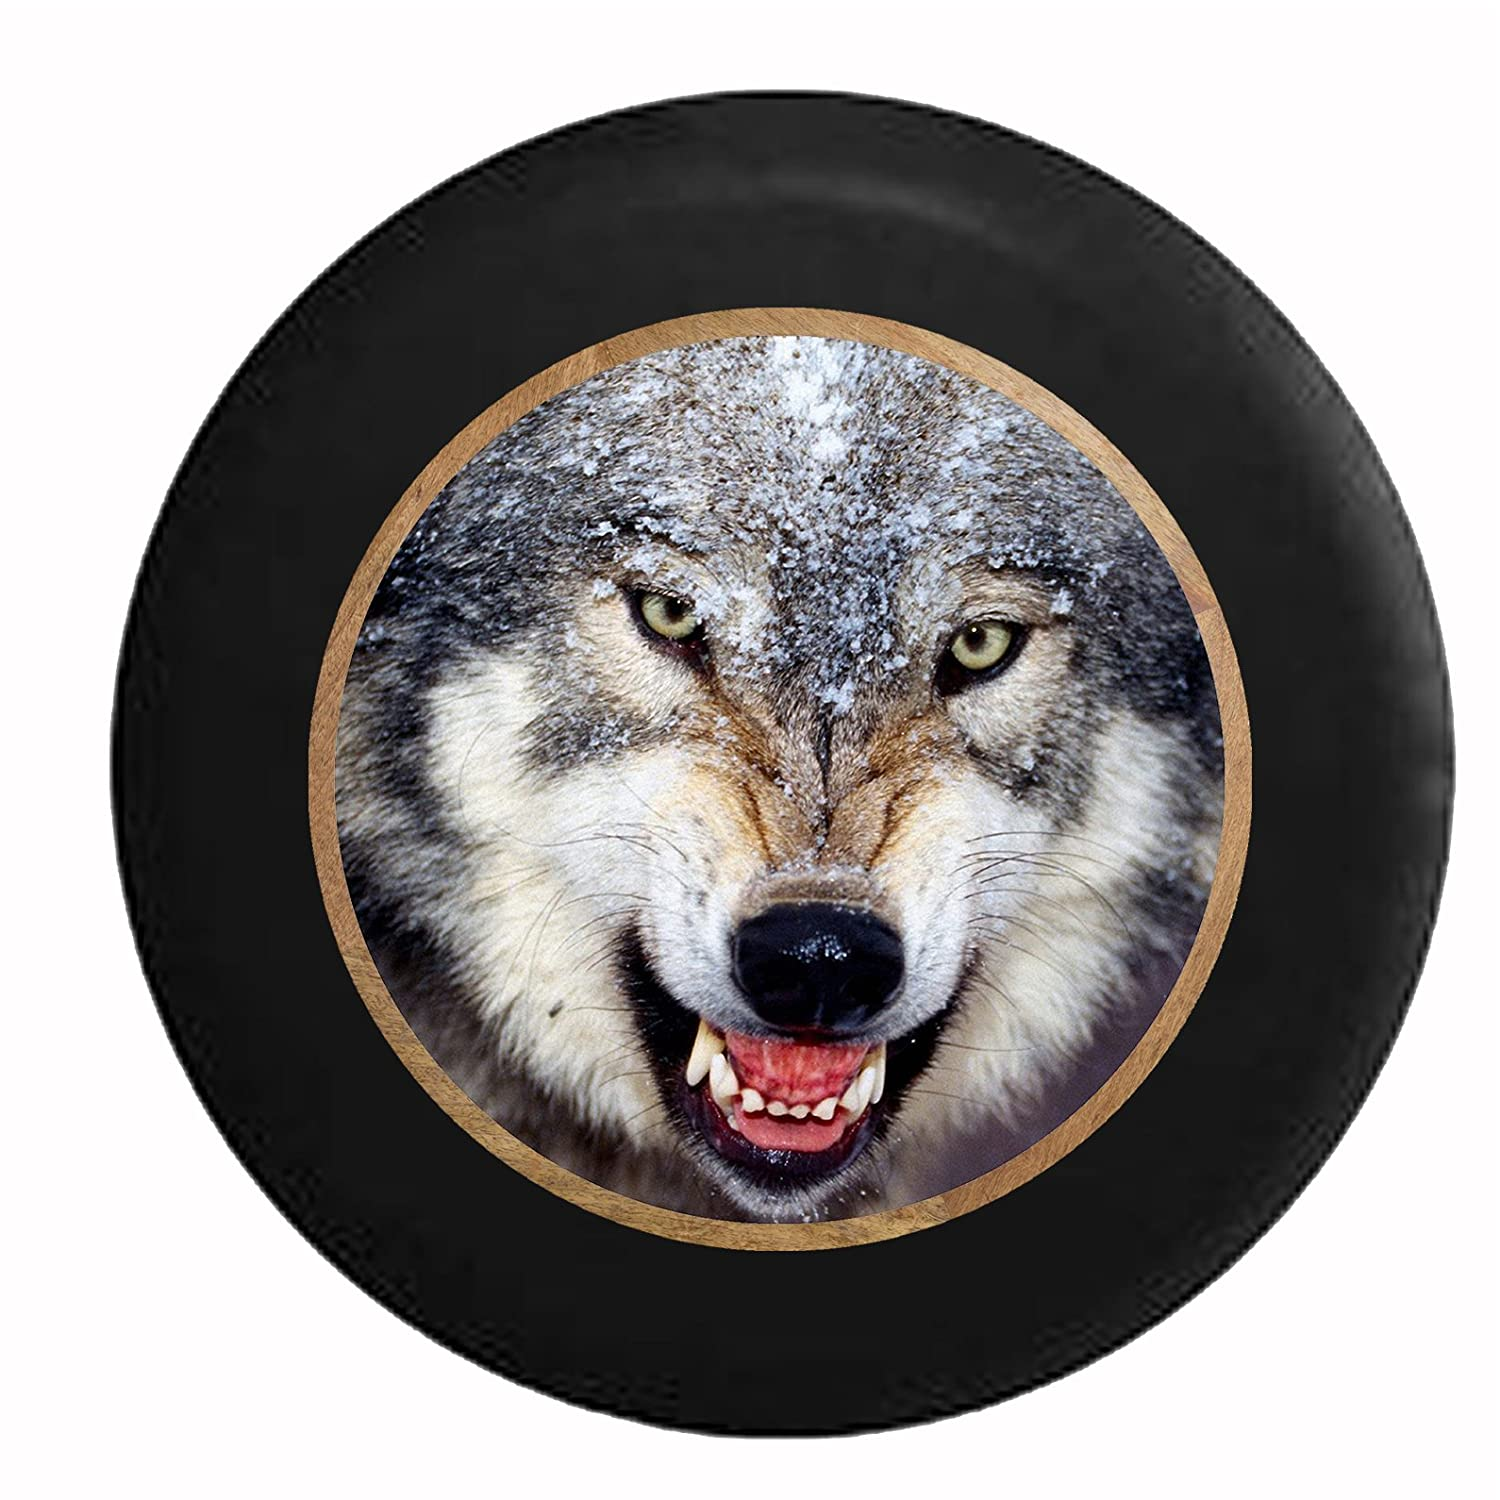 Full Color Snarling Grey Wolf Wild K9 Golden Eyes in the Snow Jeep RV Camper Spare Tire Cover Black 33 in